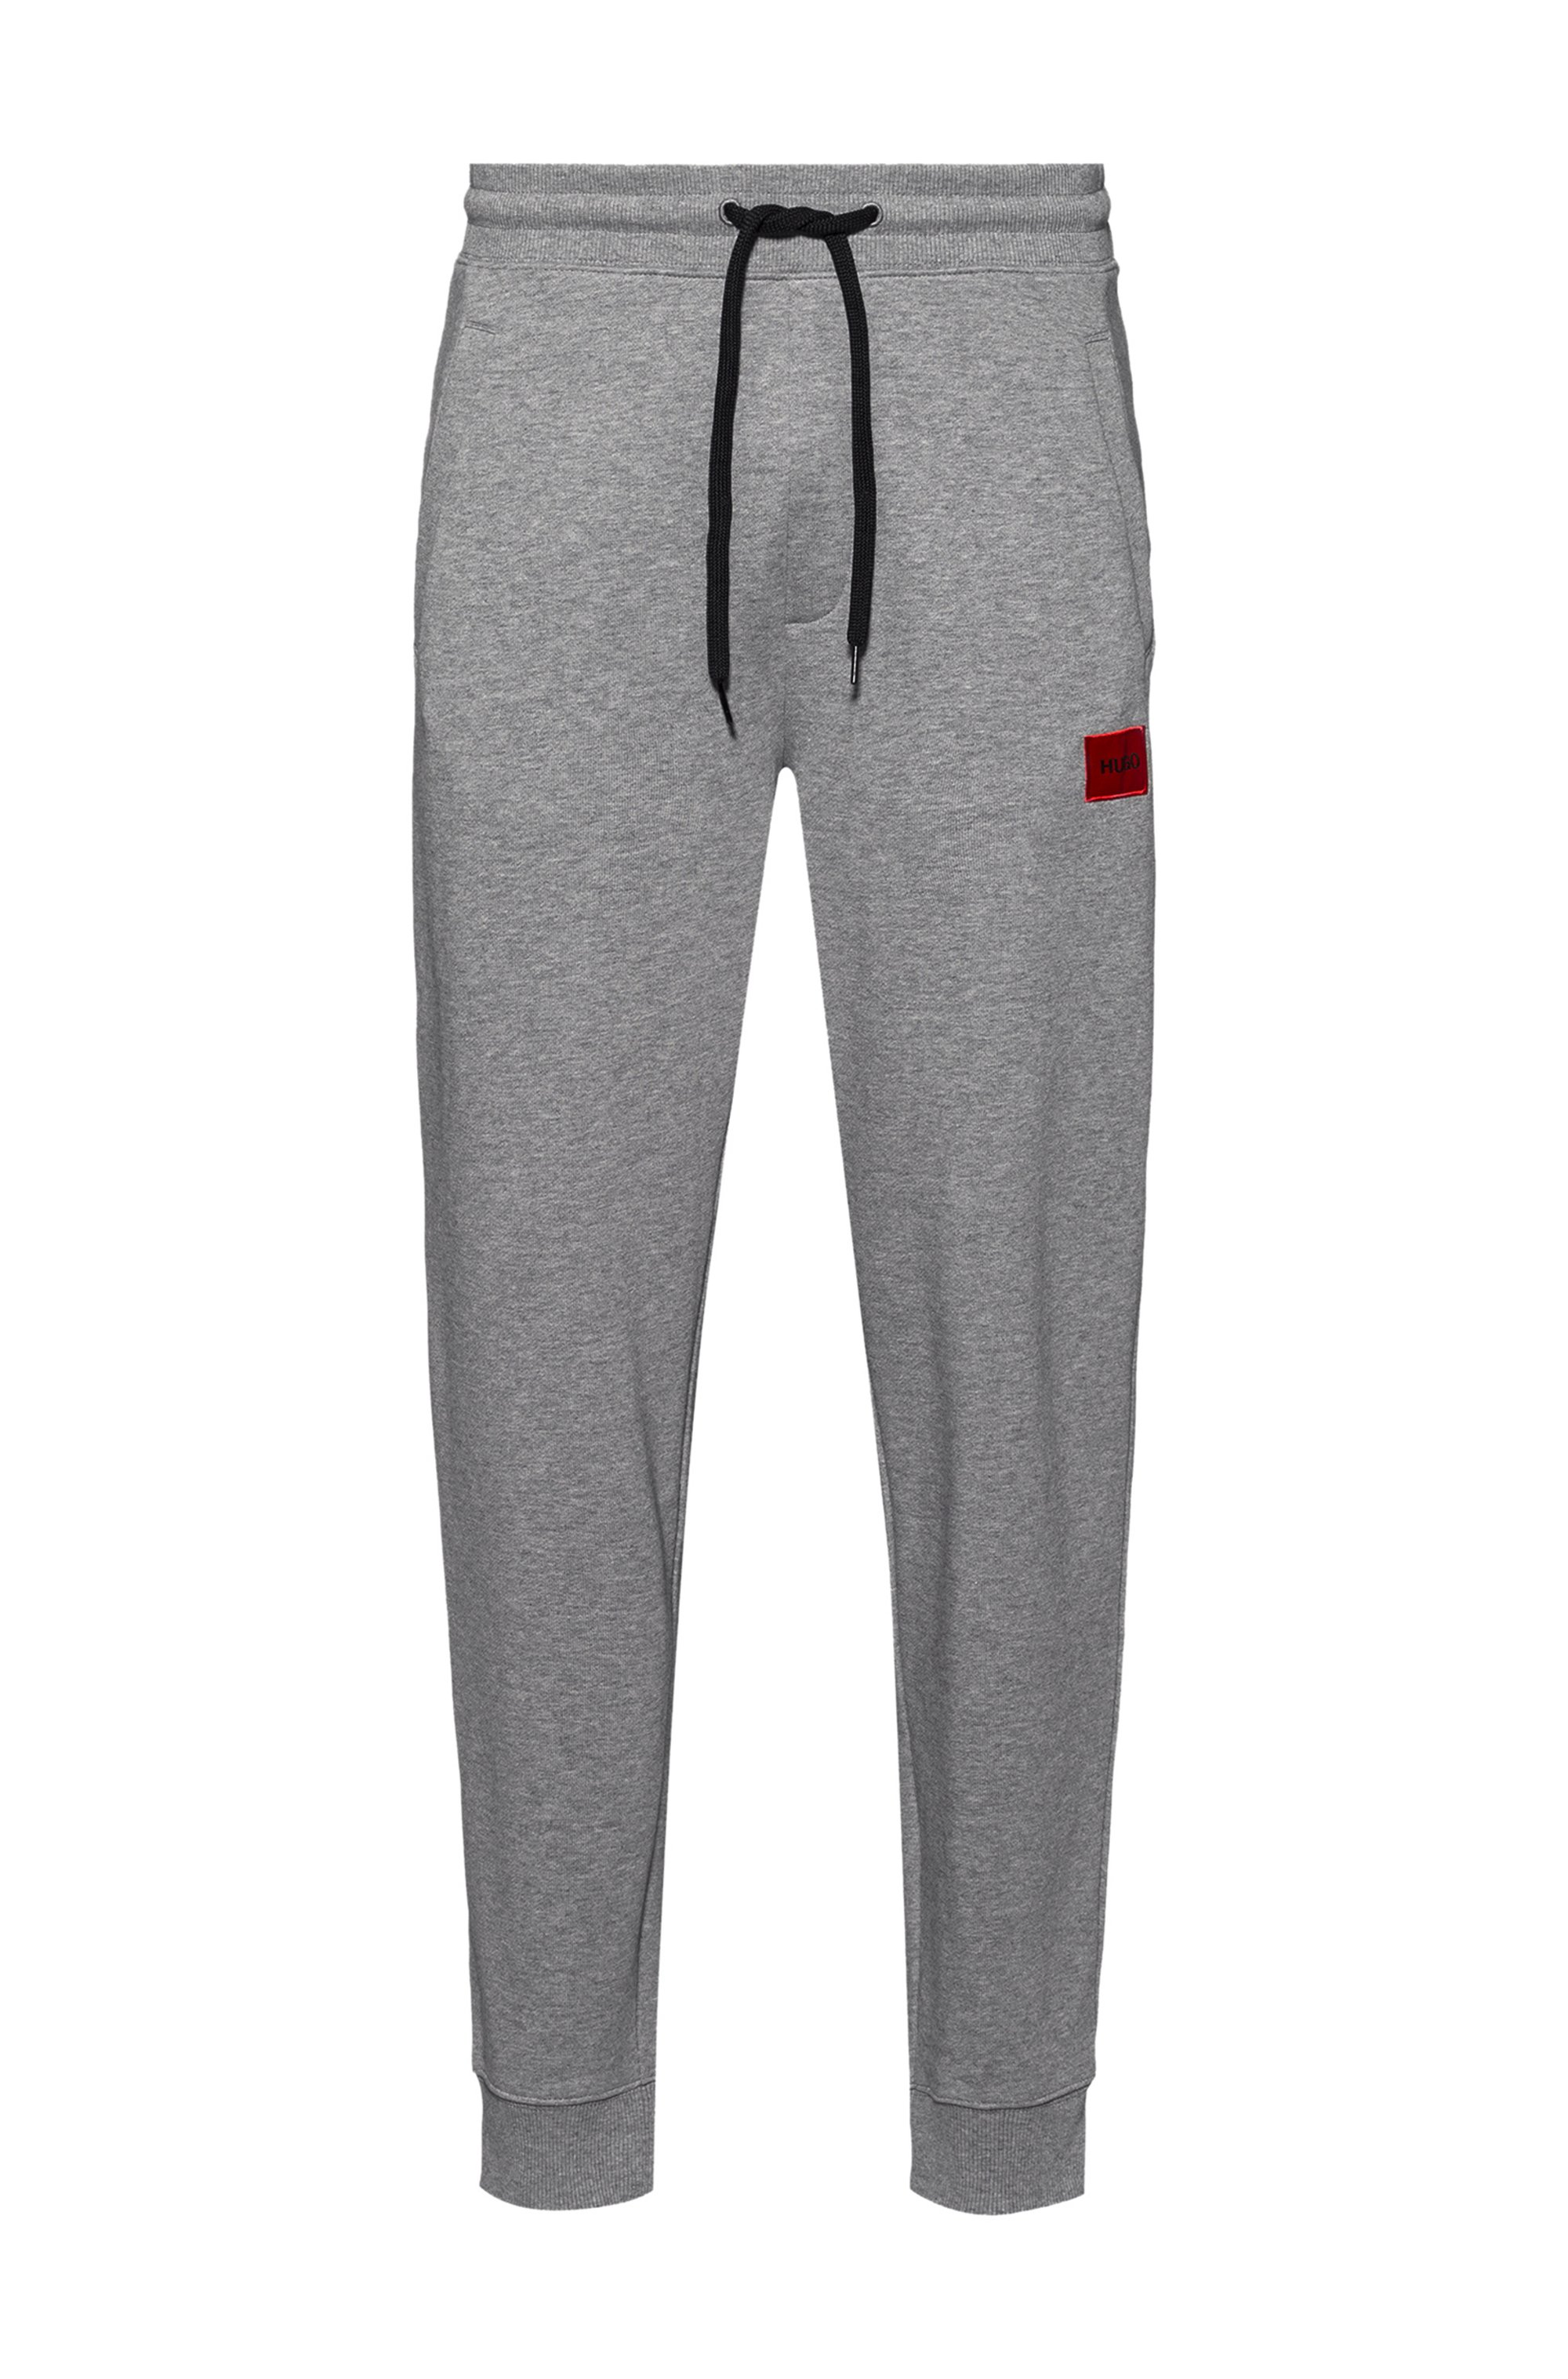 Cotton tracksuit bottoms with red logo patch, Grey